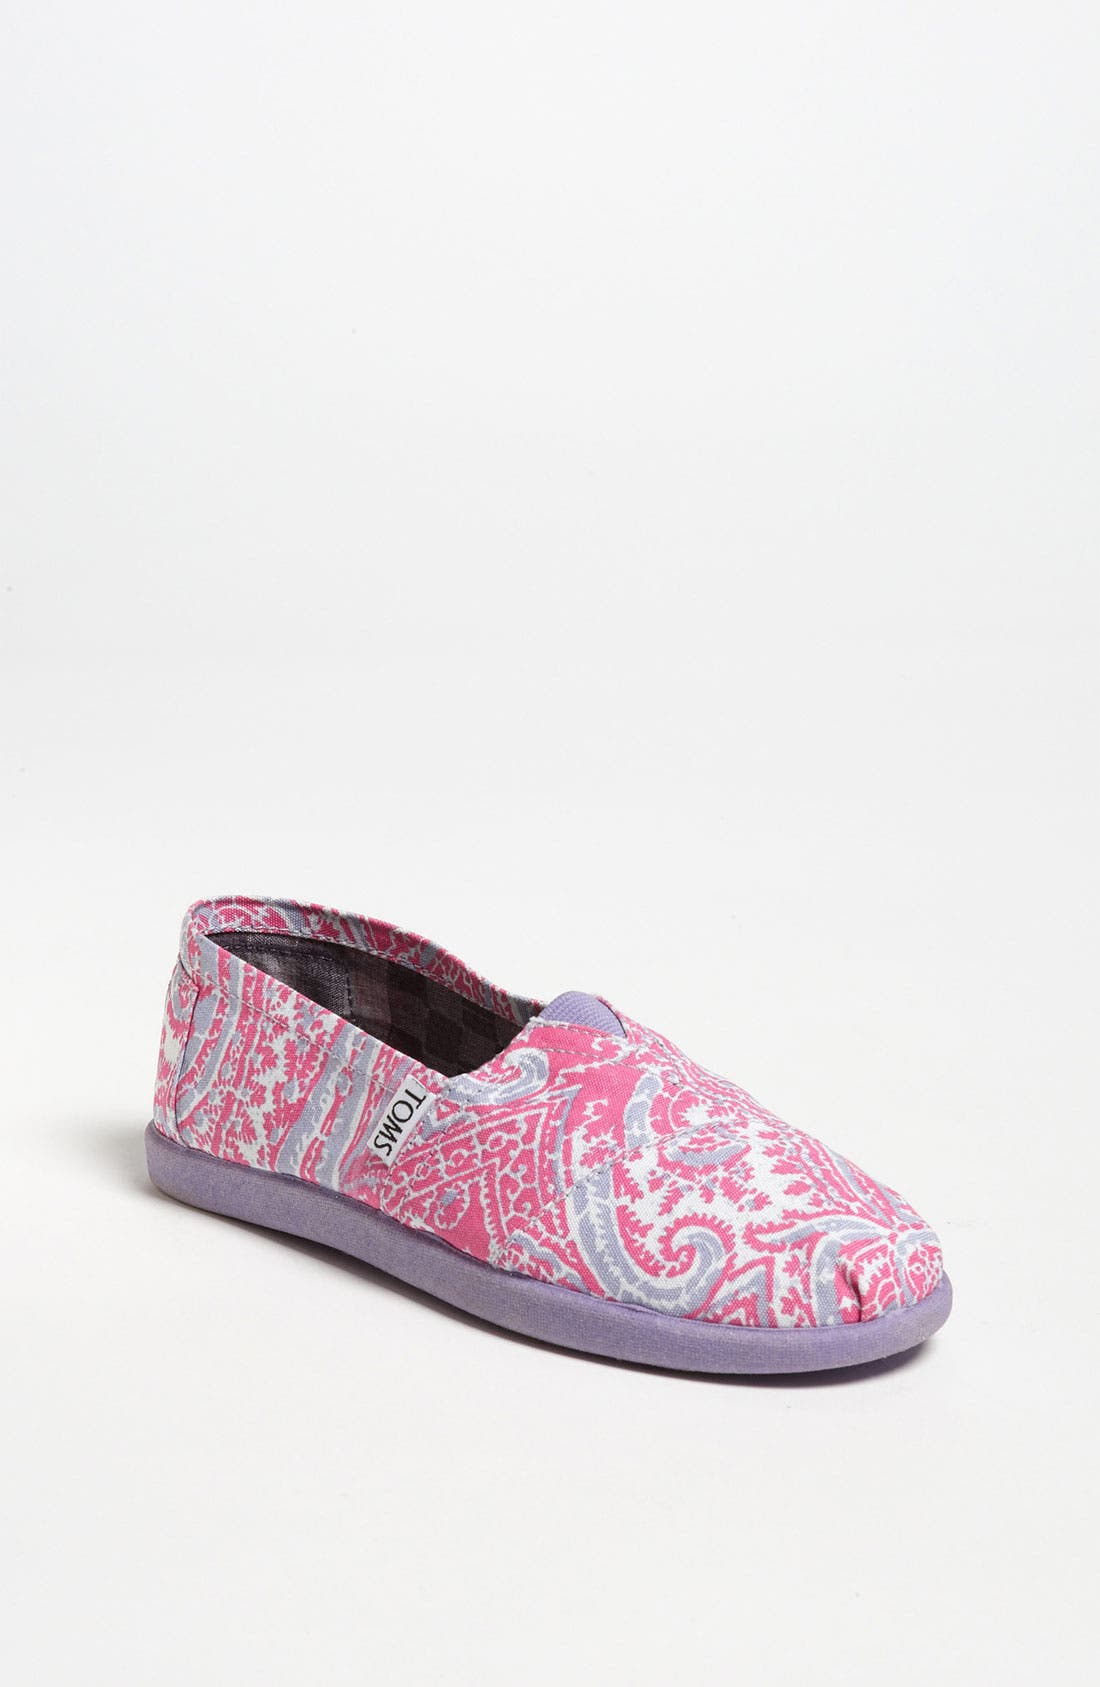 Alternate Image 1 Selected - TOMS 'Classic Youth - Paisley' Slip-On (Toddler, Little Kid & Big Kid)